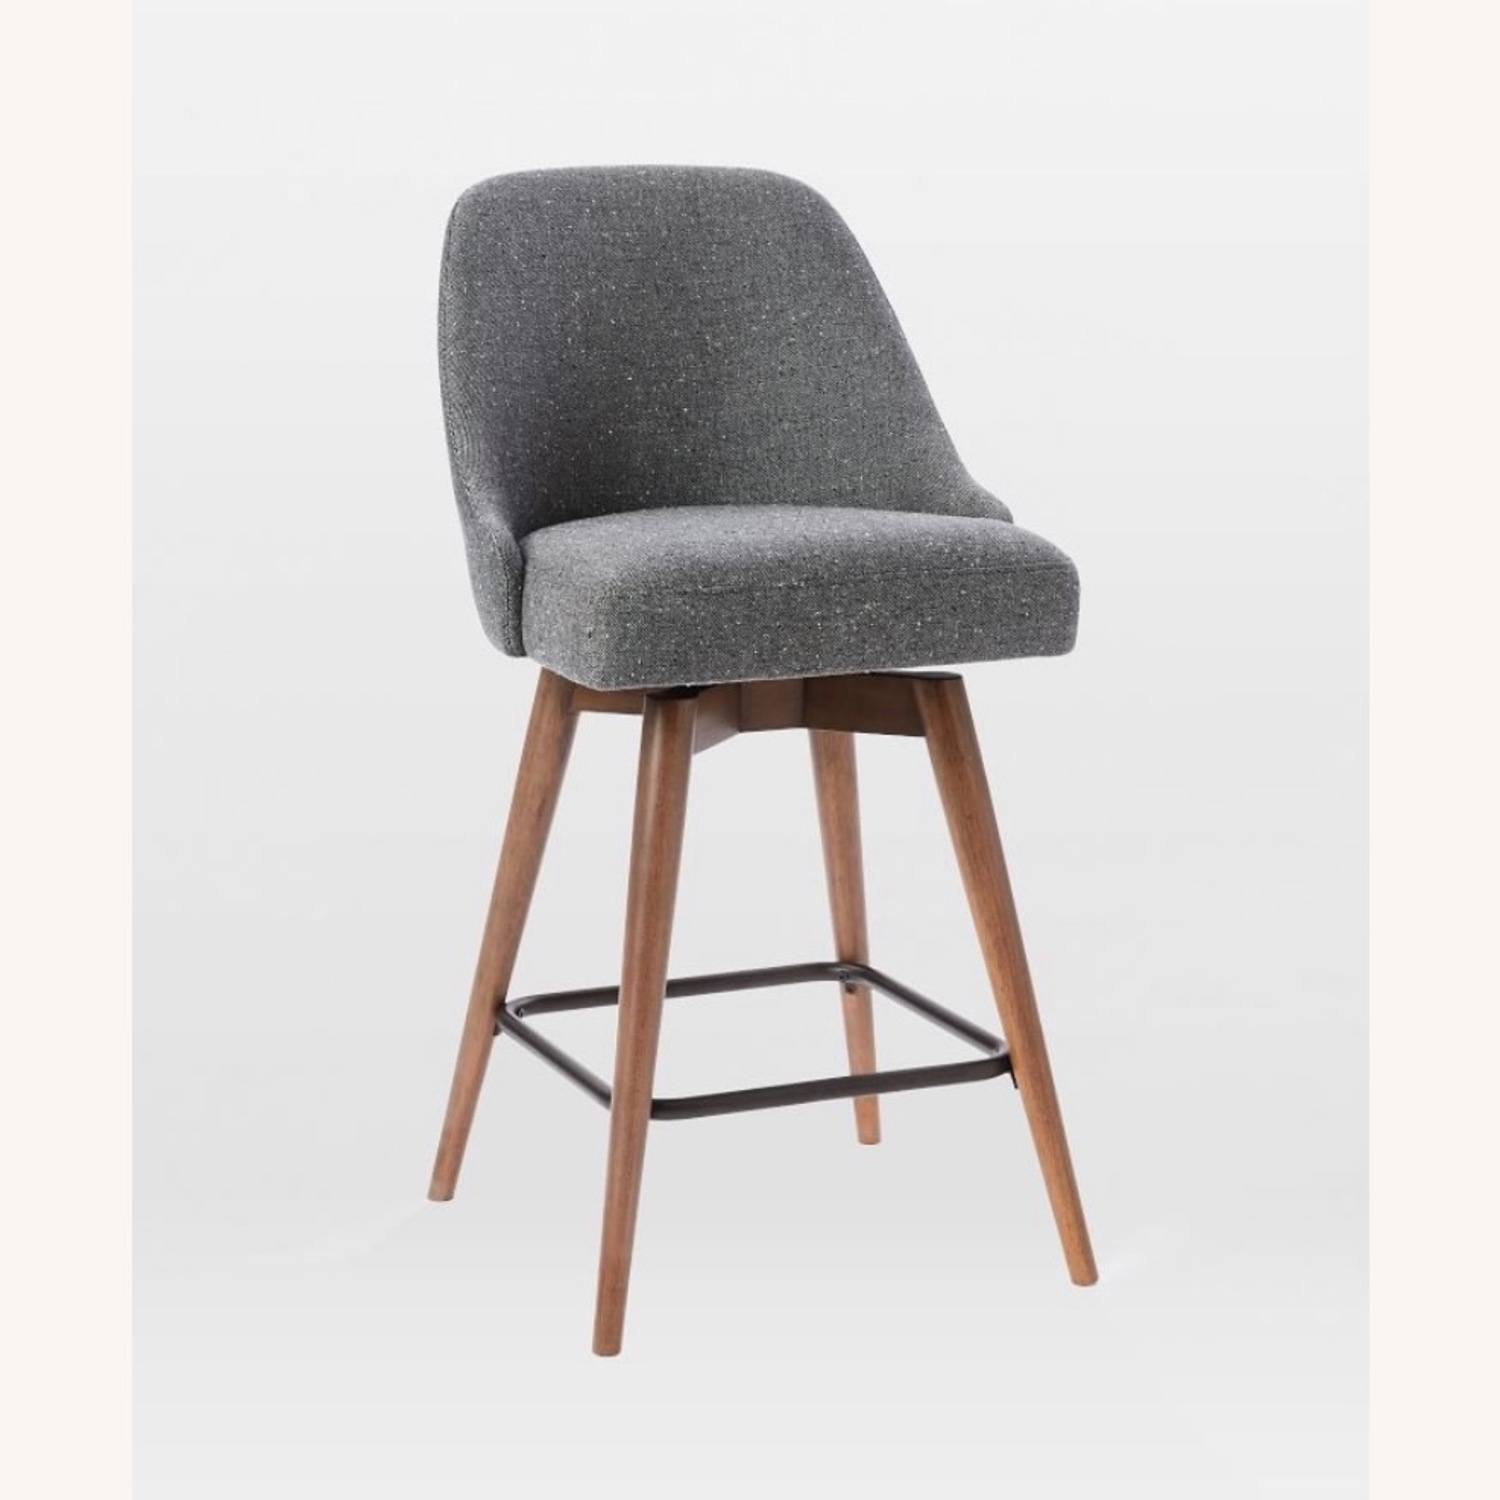 West Elm Upholstered Counter Stools - image-1